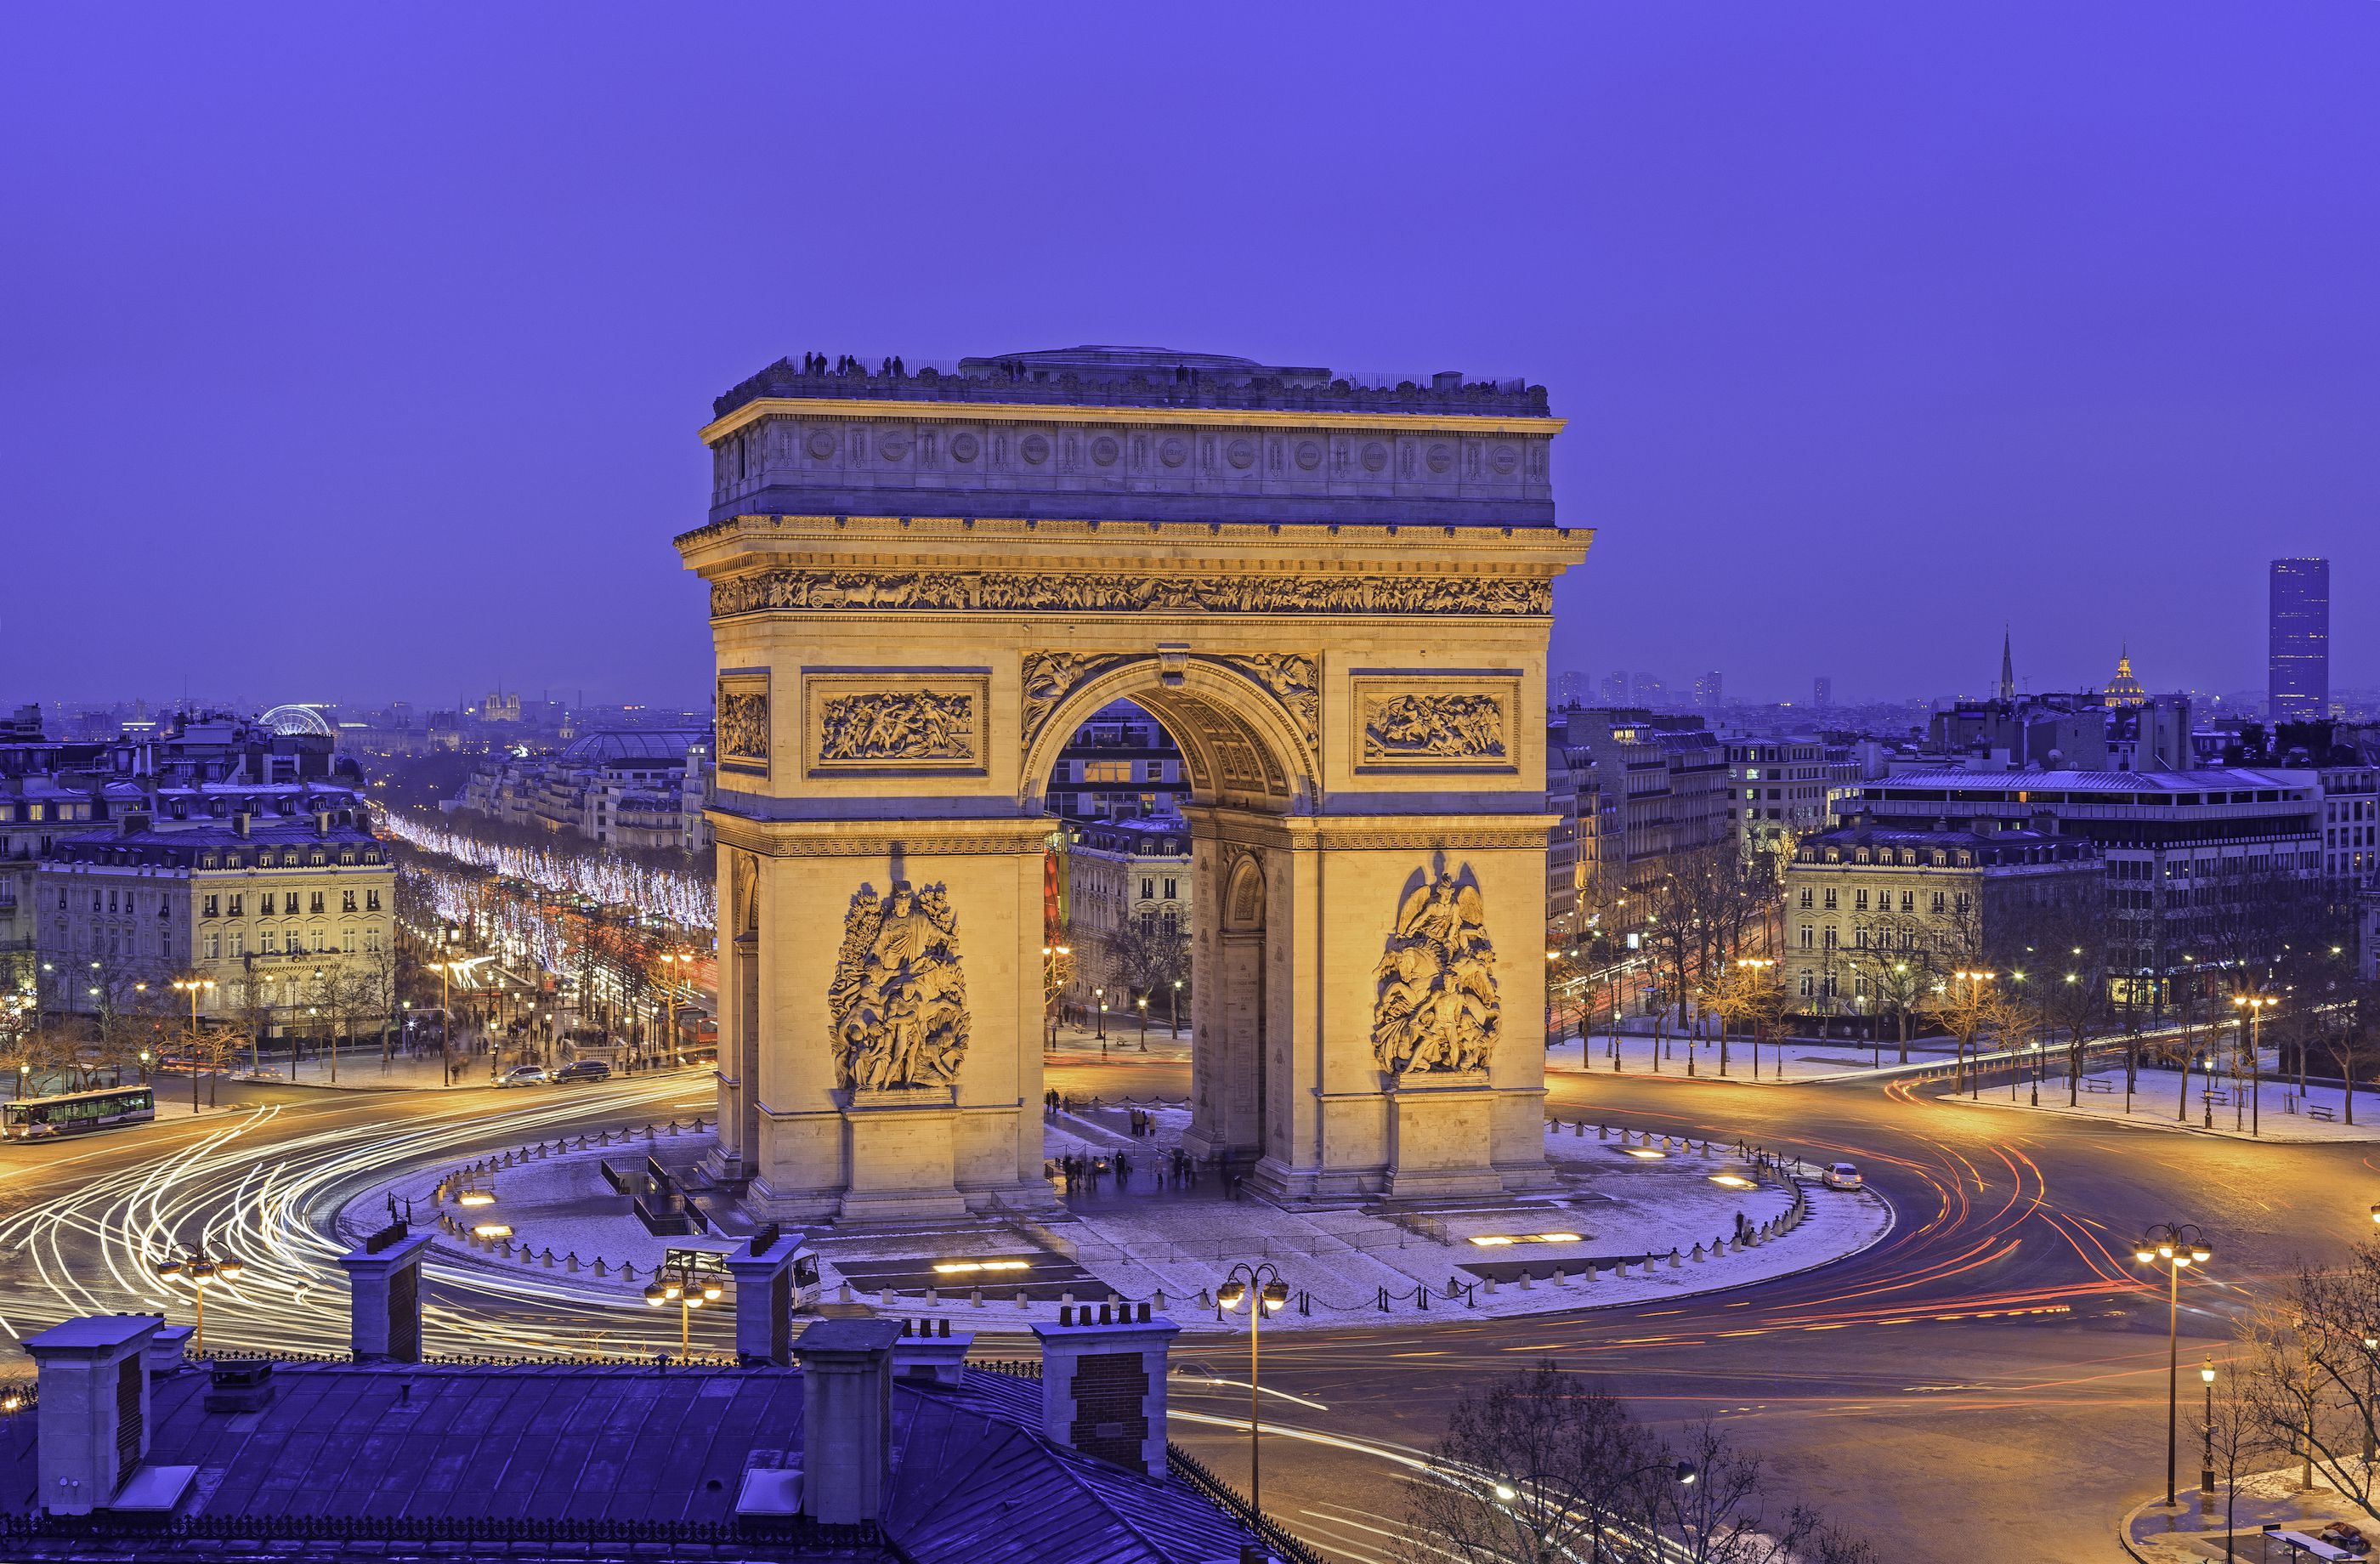 West End Auto >> The Arc de Triomphe in Paris: Complete Visitors' Guide